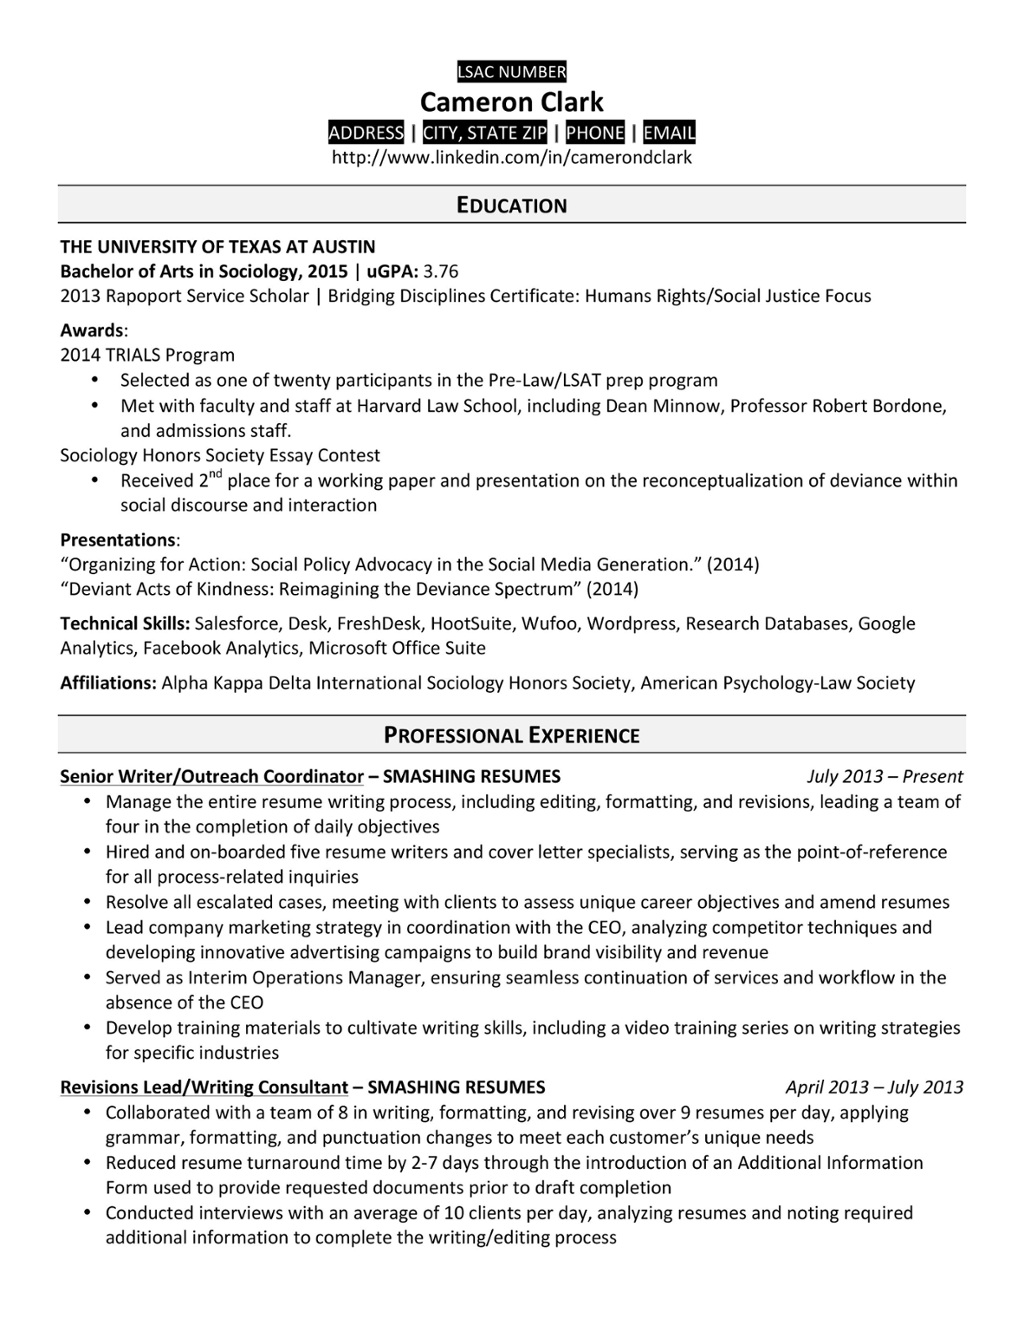 sample resume law school graduate